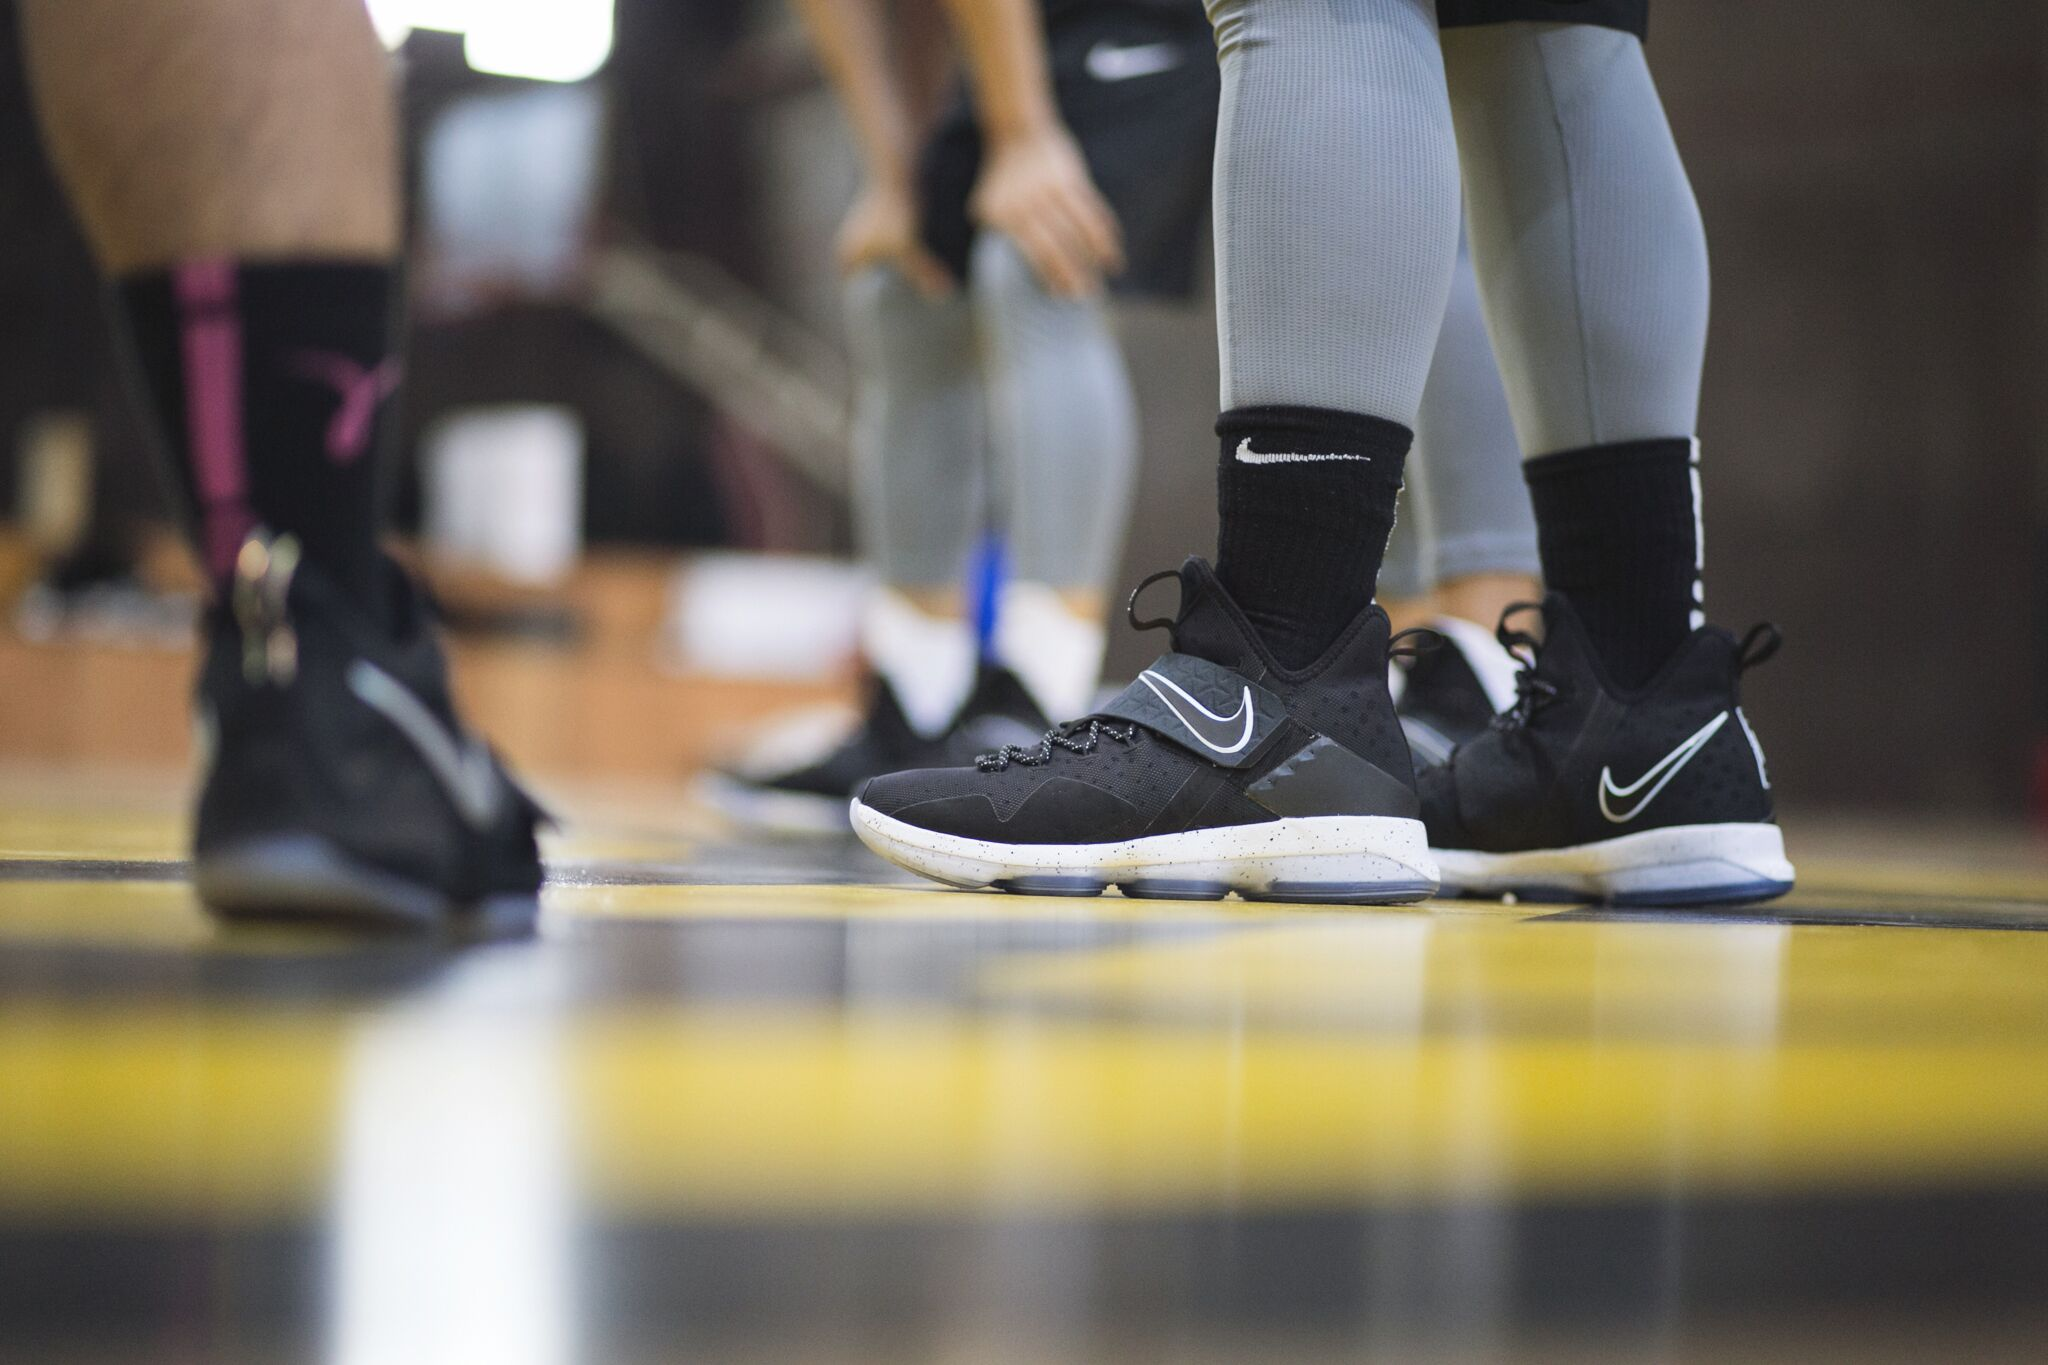 sports shoes c10a3 212d3 ... we take a look at the latest basketball performance footwear out there.  Up for discussion this time is the latest from King James, the Nike LeBron  14.